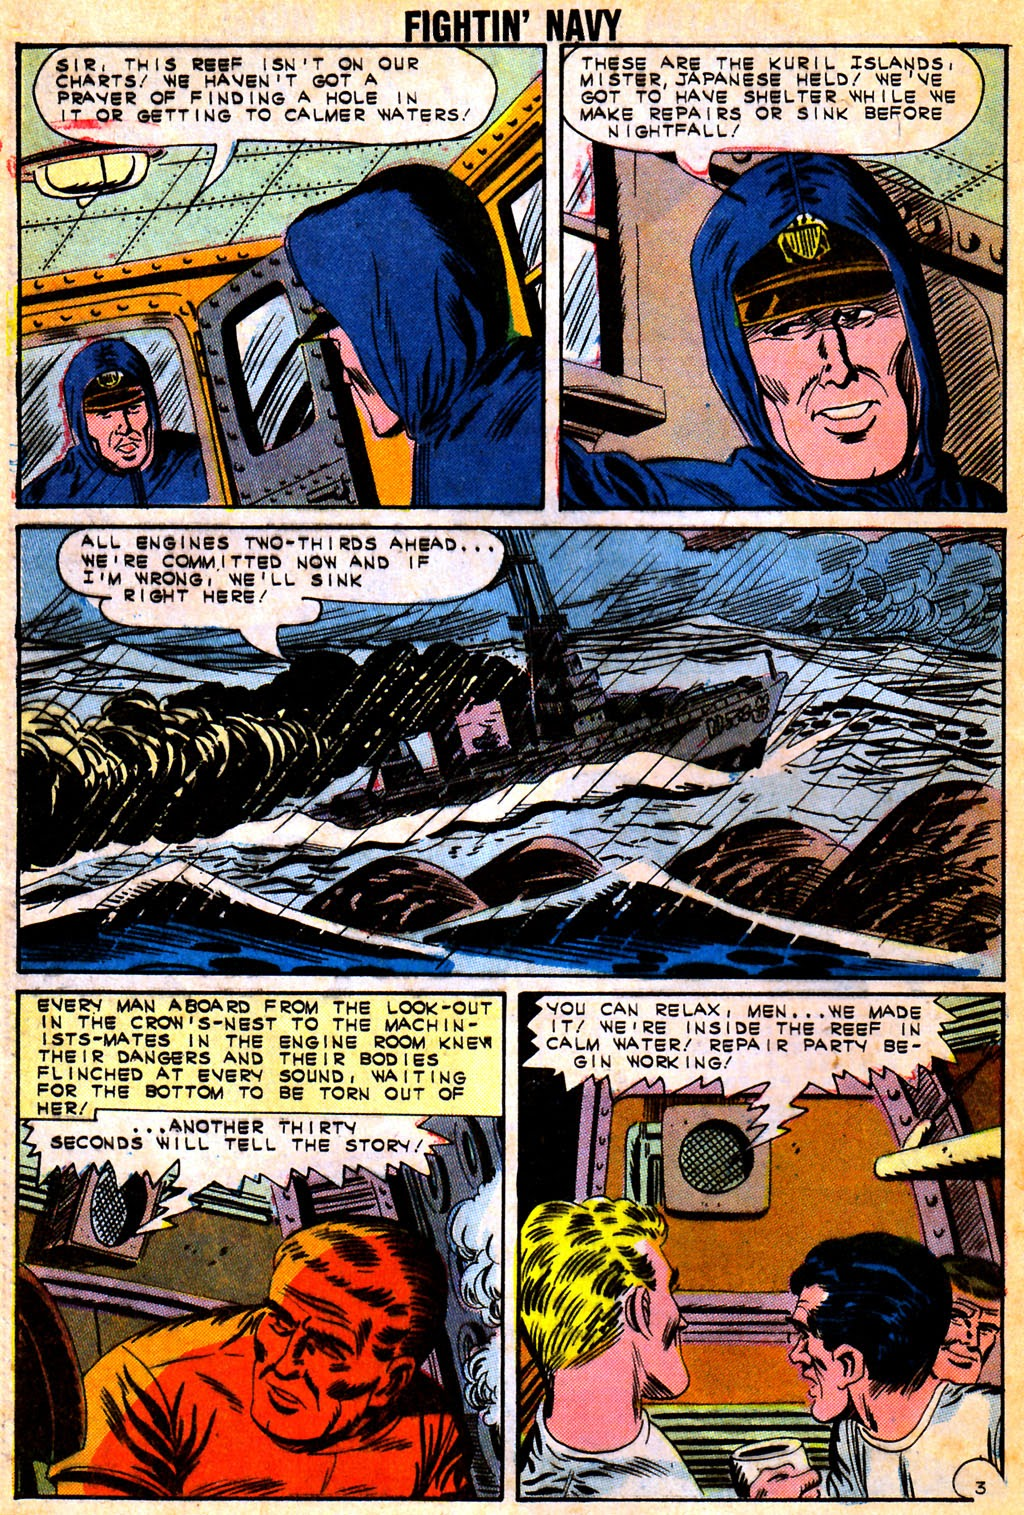 Read online Fightin' Navy comic -  Issue #111 - 24